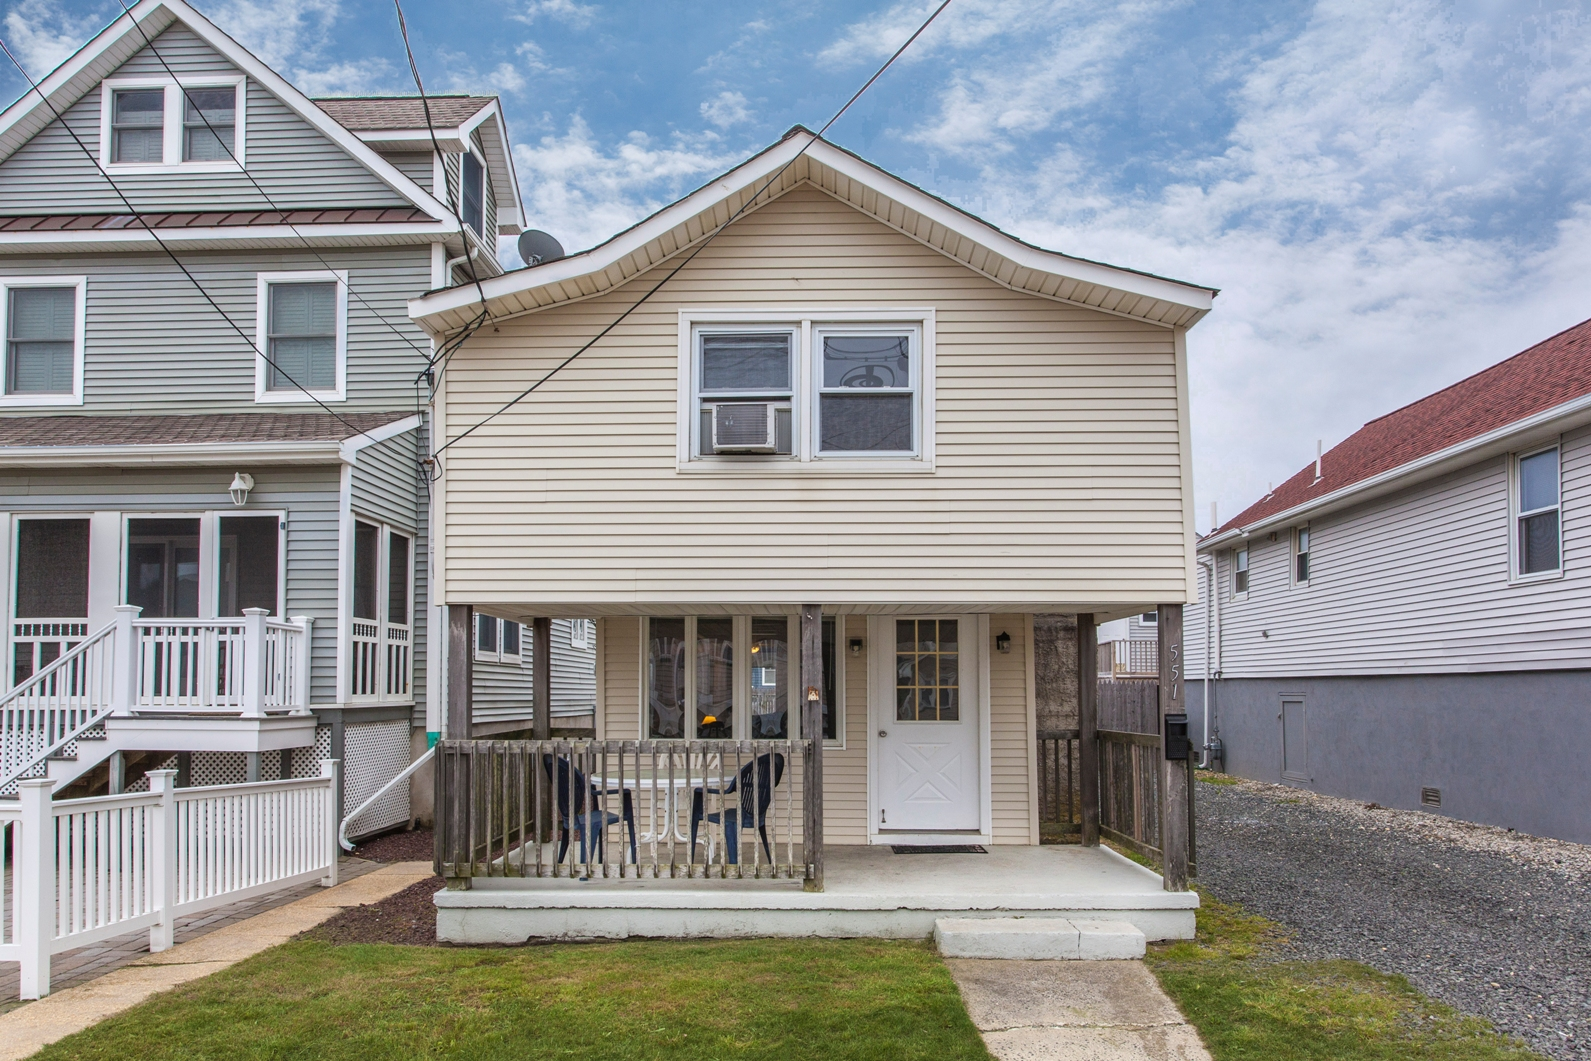 Single Family Home for Sale at Three blocks from beach 551 Brielle Road Manasquan, New Jersey, 08736 United States